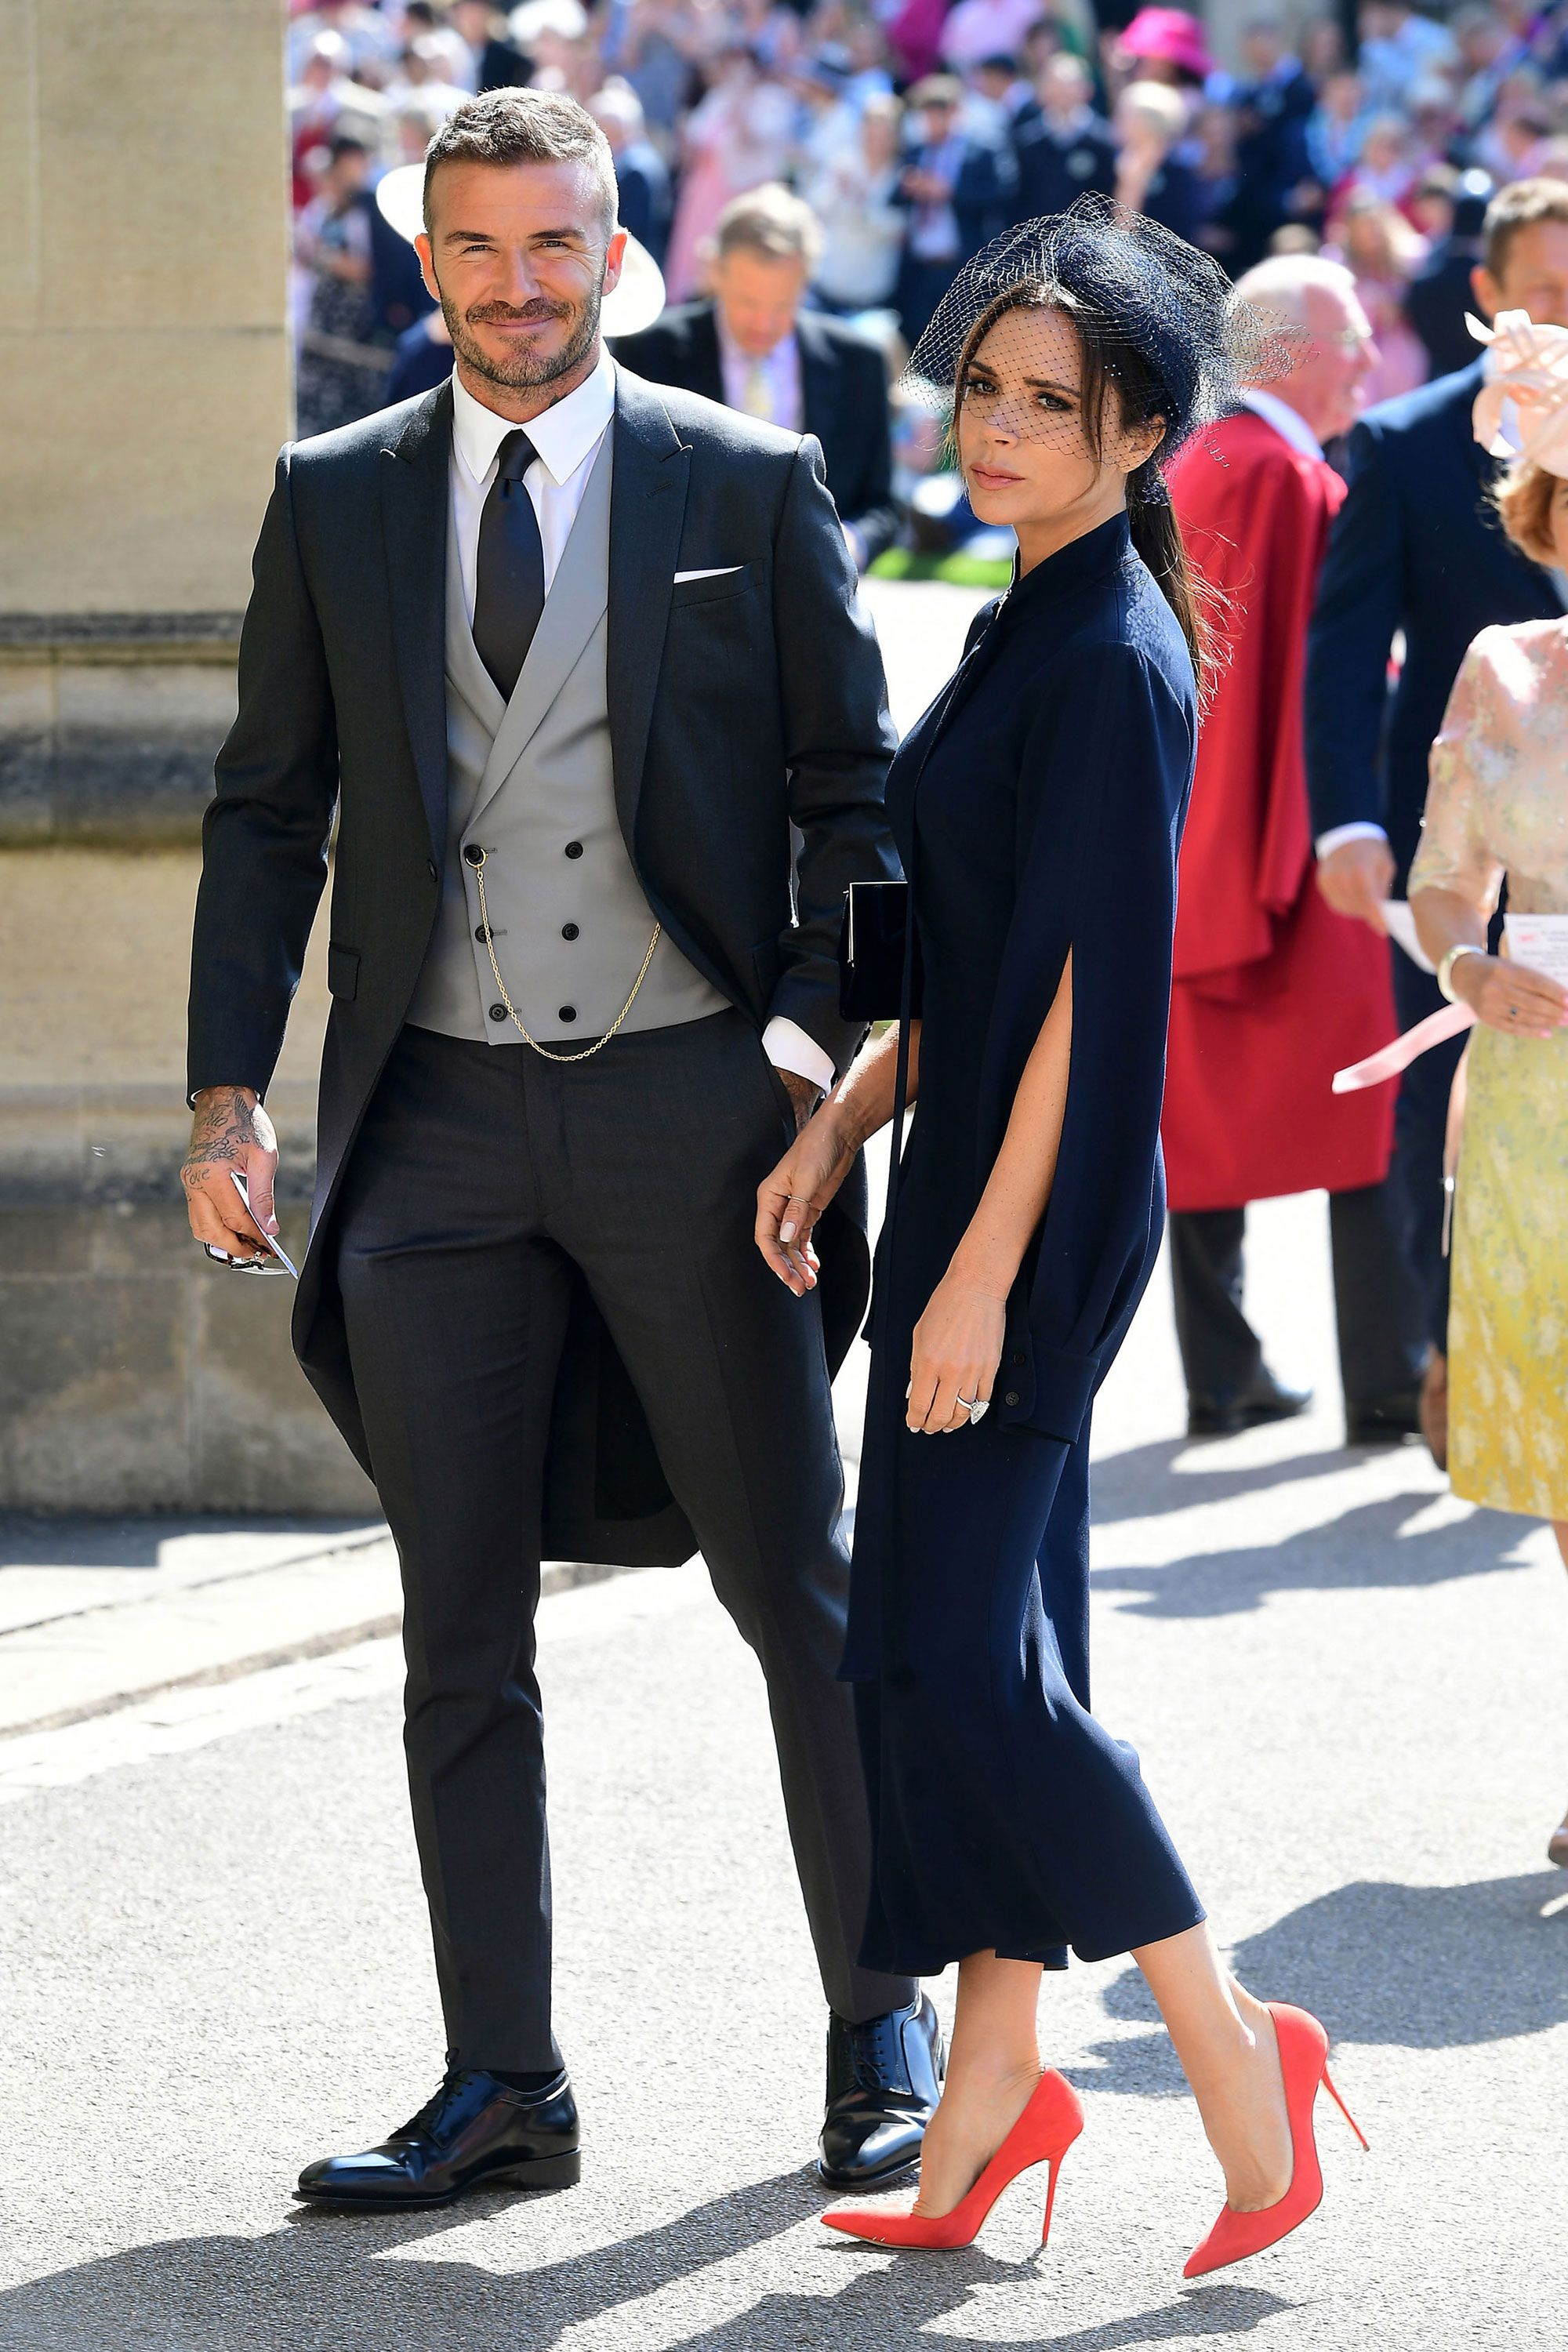 Royal Wedding 2018 Victoria Beckham S Dress Looks Similar To Her Prince William And Kate Outfit